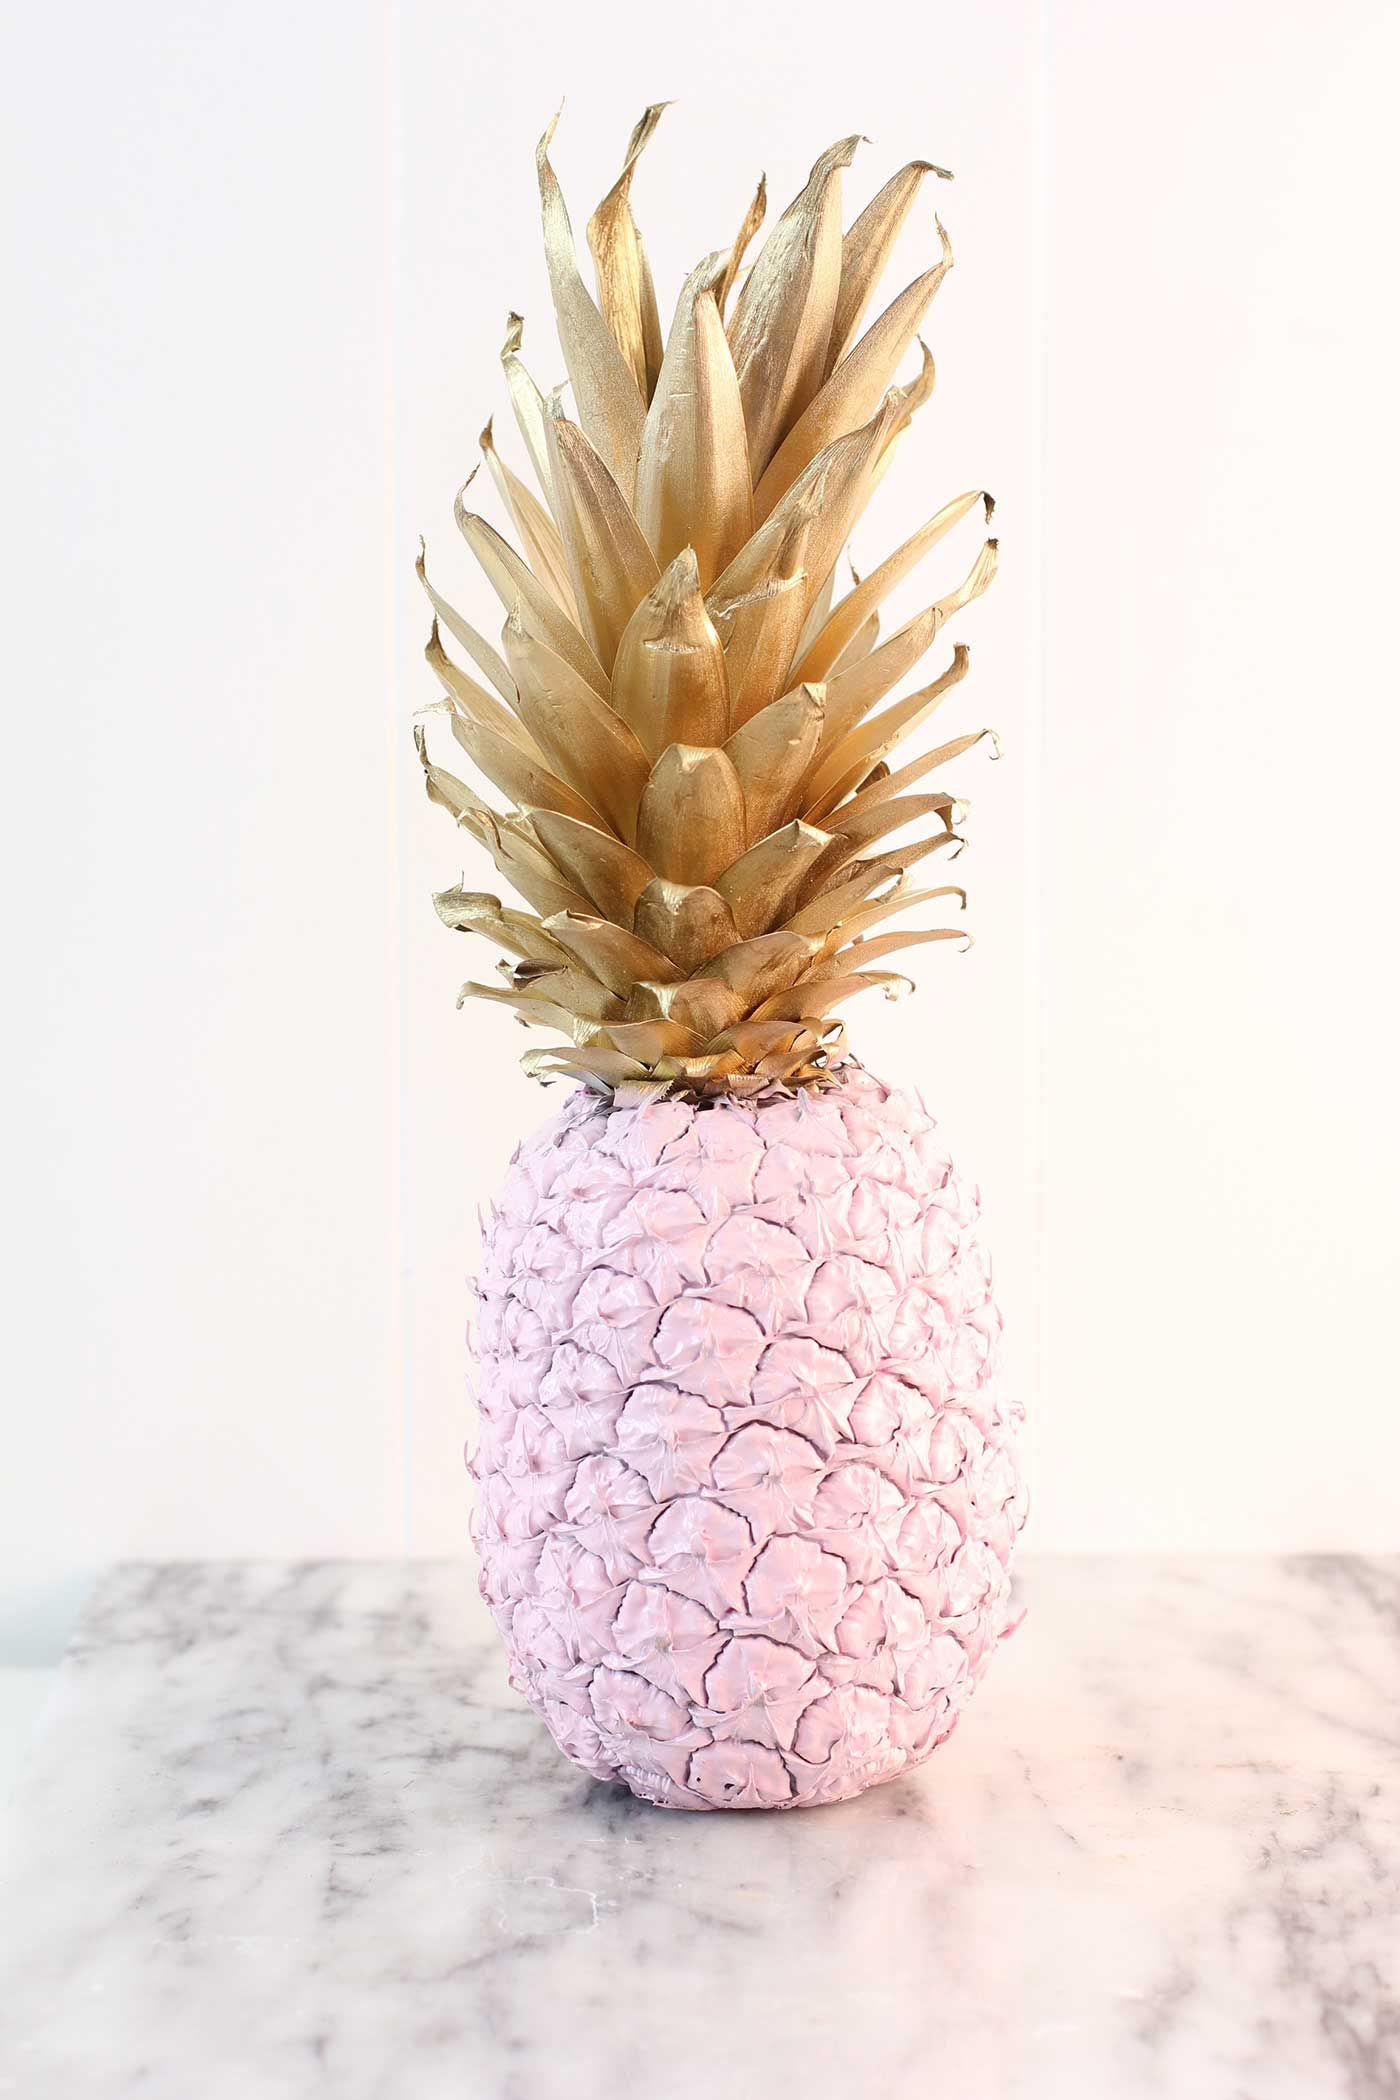 DIY PINK & GOLD PAINTED PINEAPPLE TUTORIAL is part of Pineapple wallpaper, Gold pineapple, Pineapple decor, Phone backgrounds, Pink and gold, Pineapple - If I was Weird Al, I would make up a parody called WhoLetThePineapples out  ;) I've had quite a bit of my own fun on Instagram creating silly hashtags  Talk about a blast from the past! One of my favorite things about Summer is all things fruity   especially pineapples! Speaking of pineapples, Read more